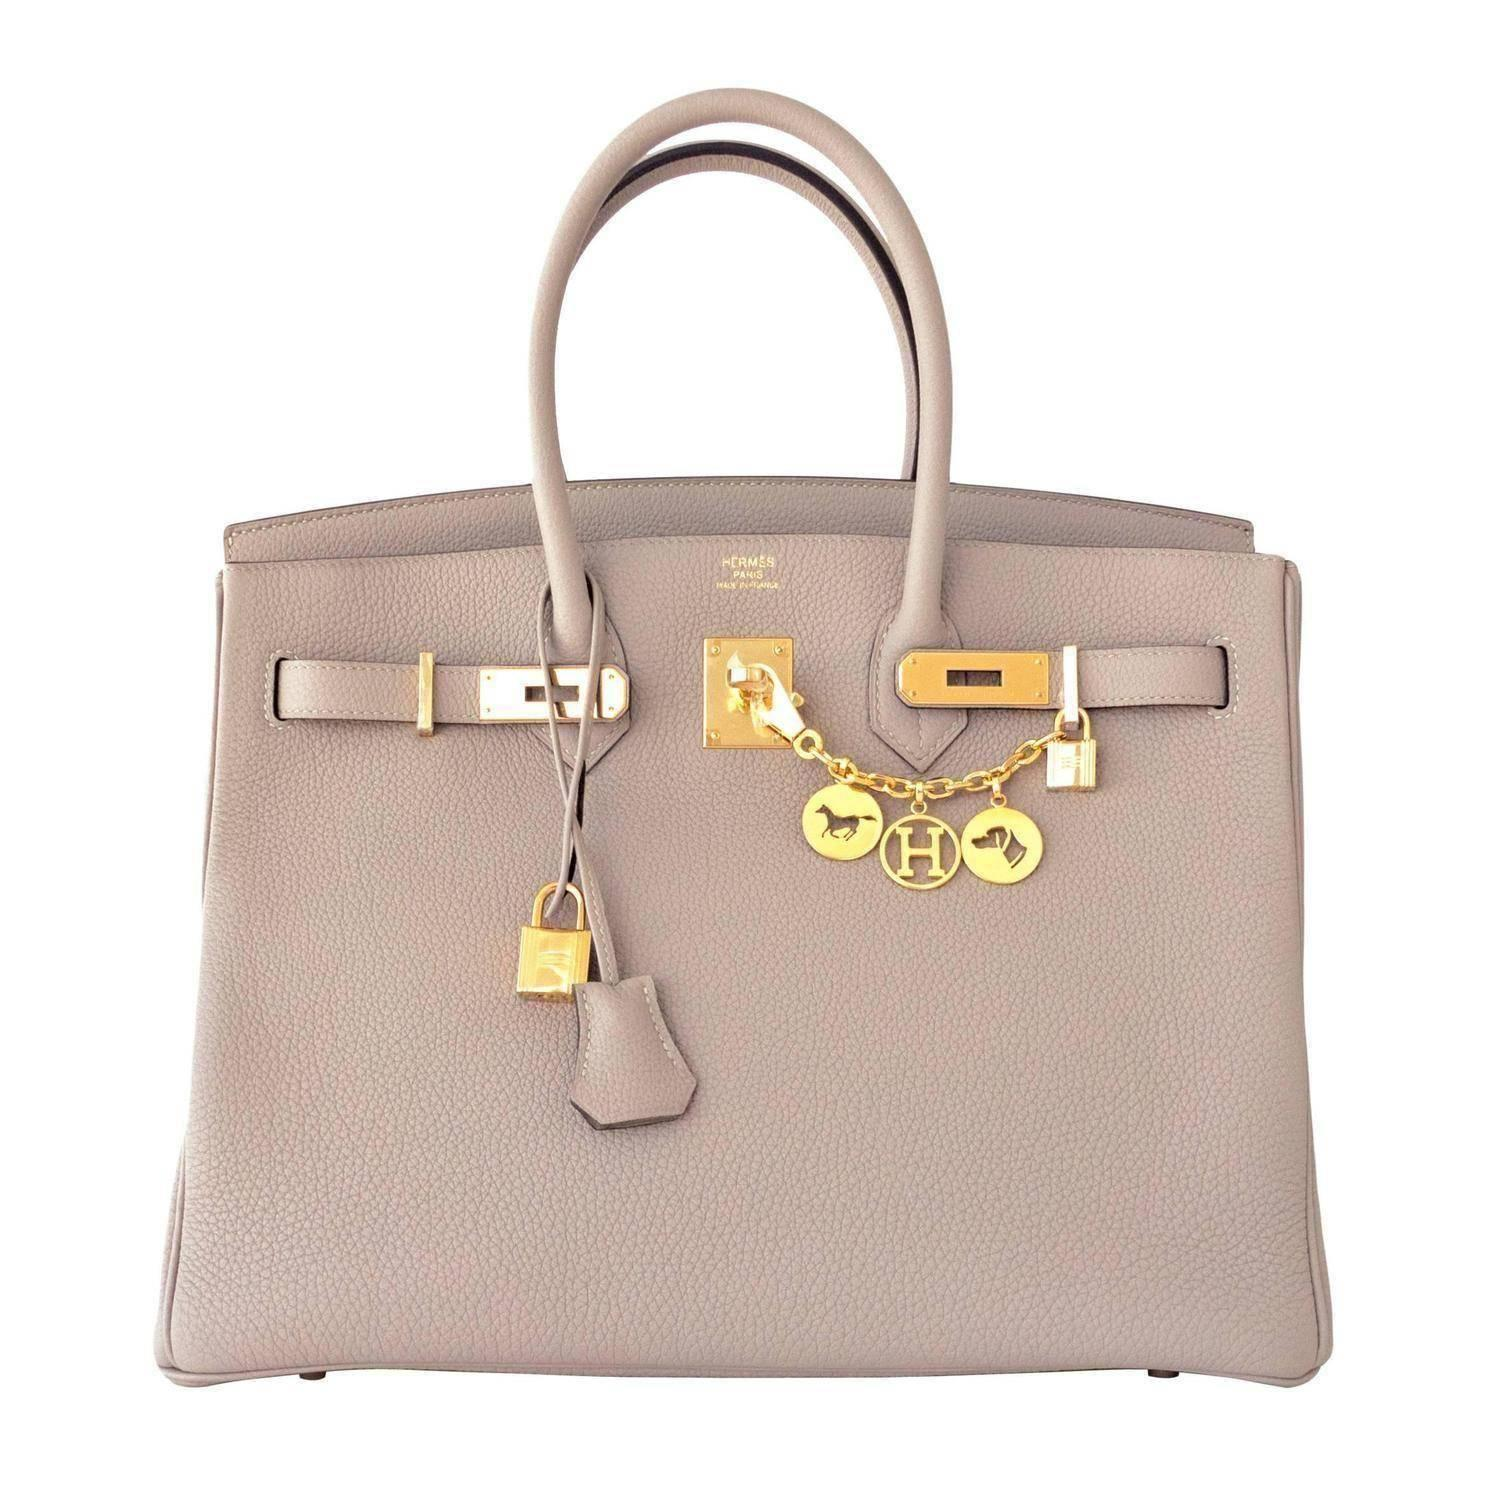 replica birkin hermes - Vintage Herm��s Handbags and Purses - 1,401 For Sale at 1stdibs